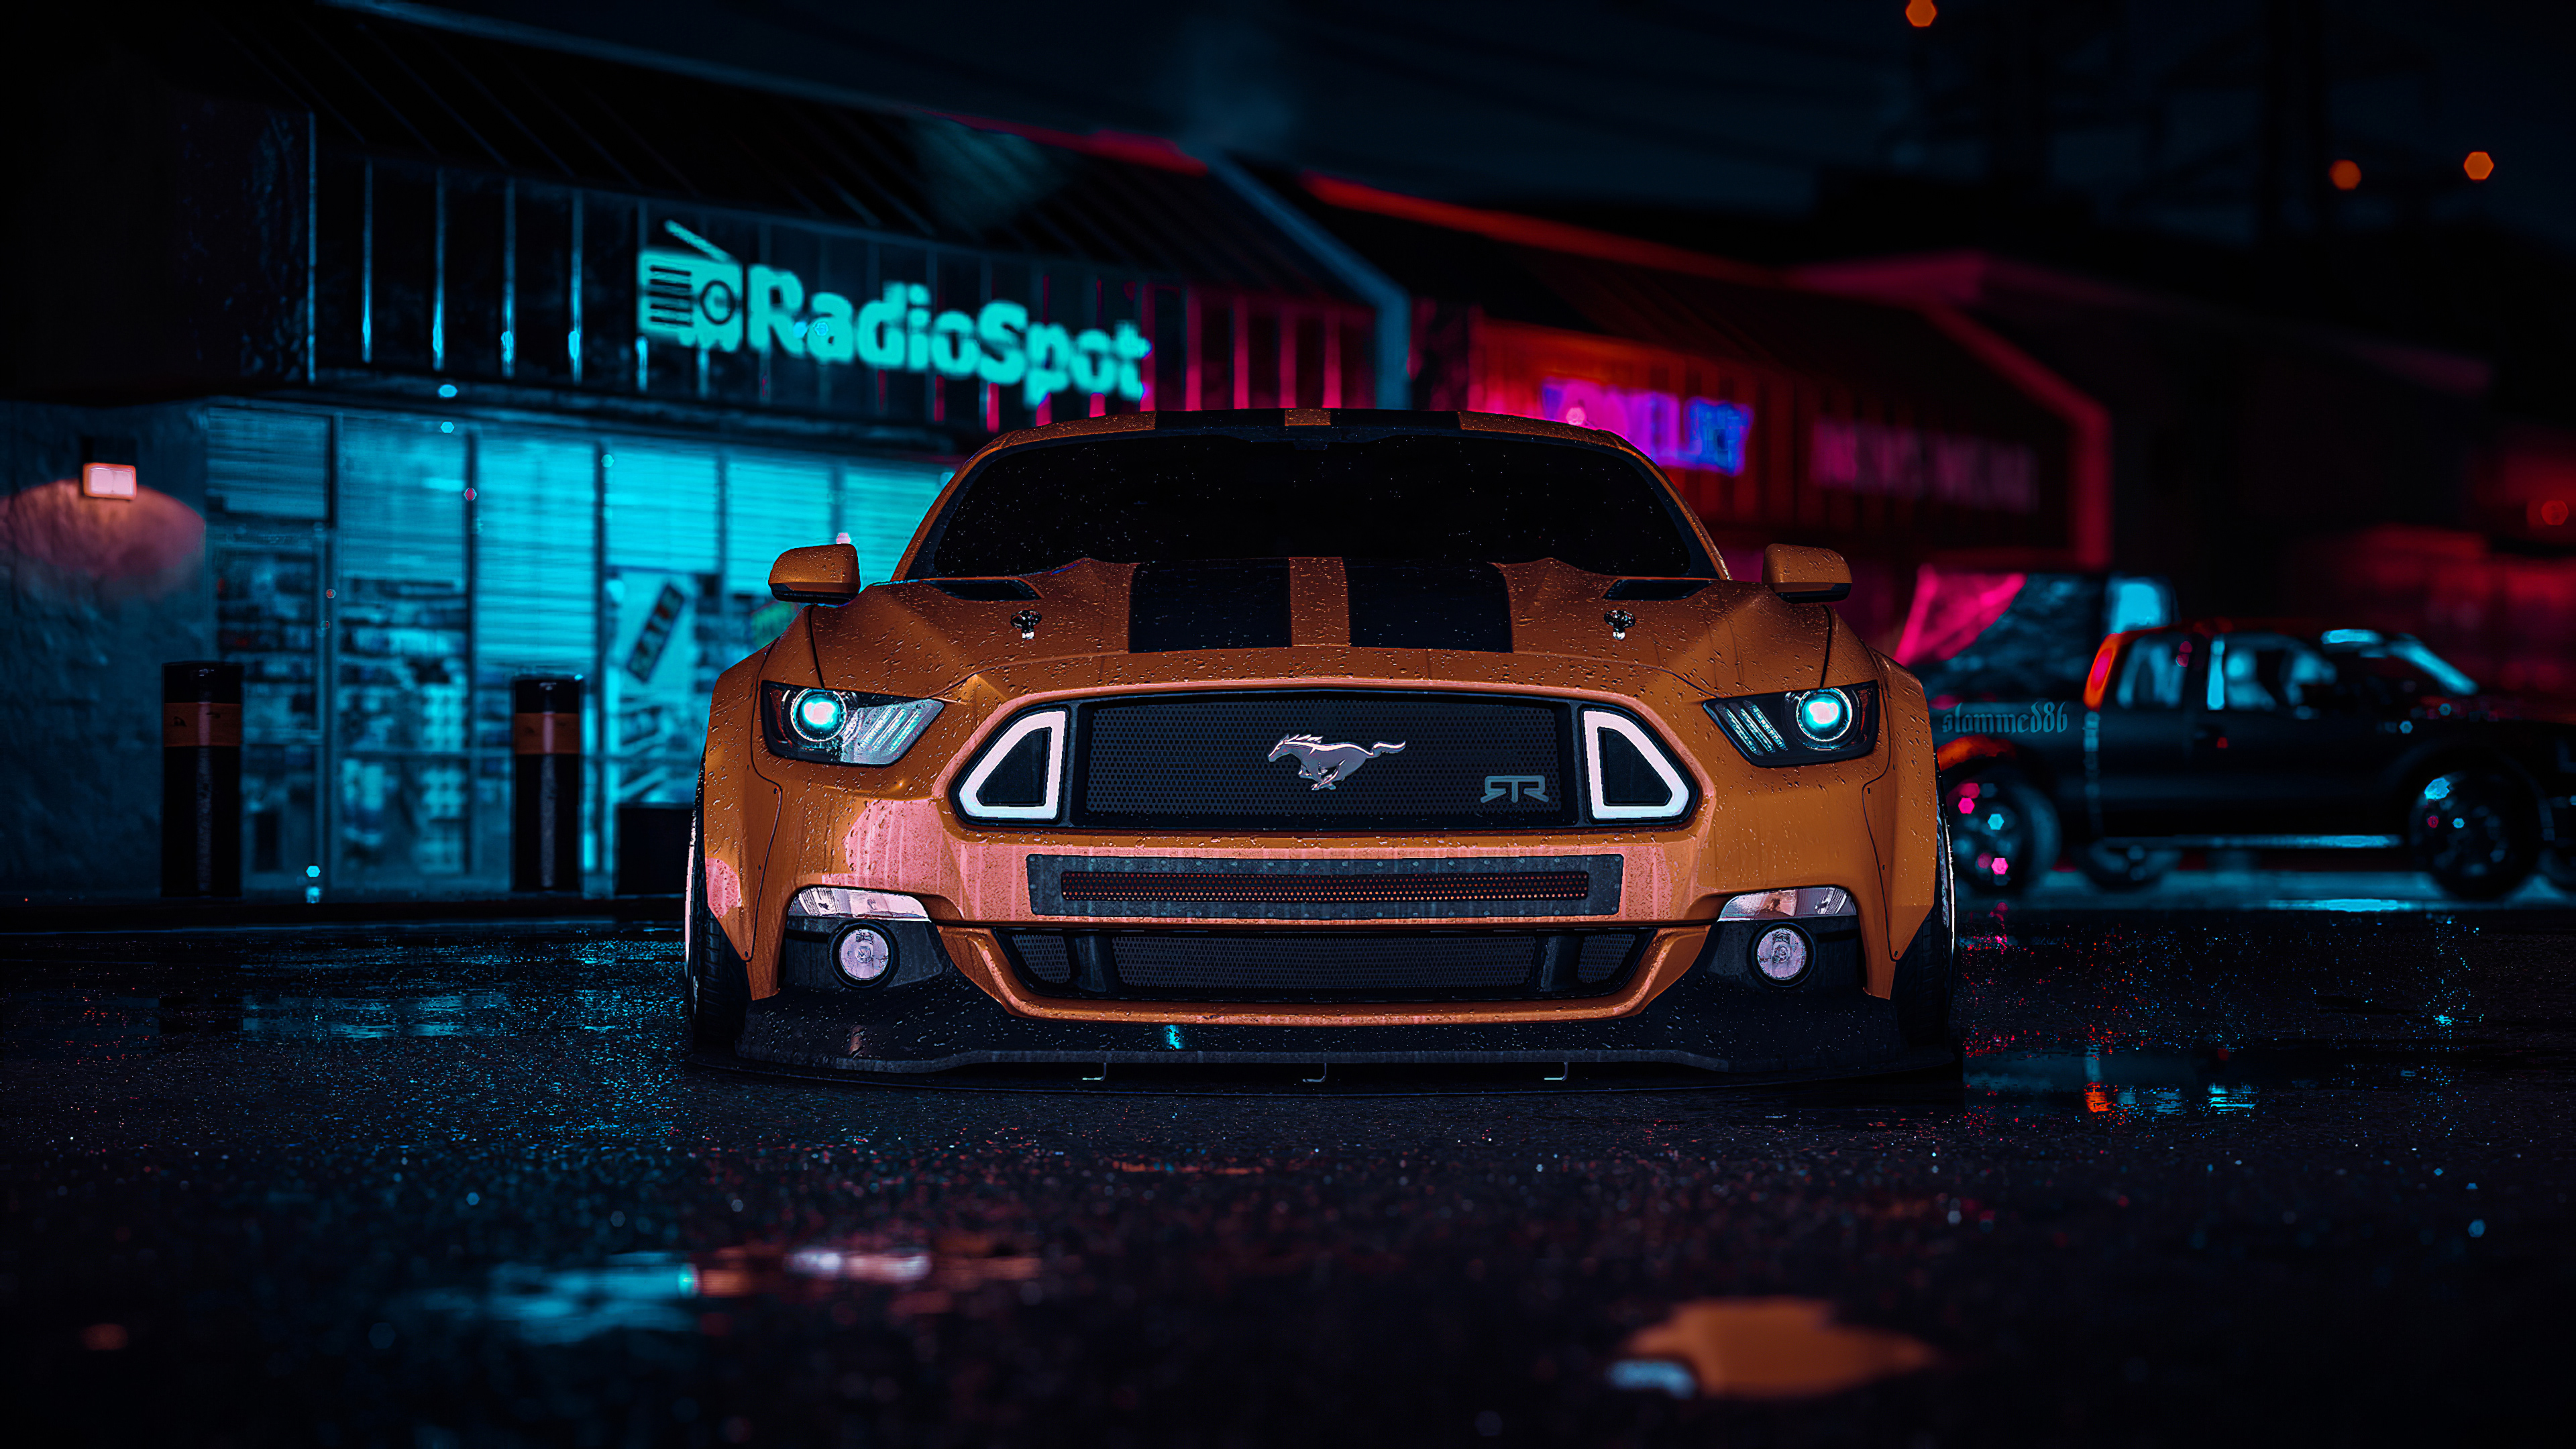 1280x900 Ford Mustang Rtr Need For Speed 4k 1280x900 Resolution Hd